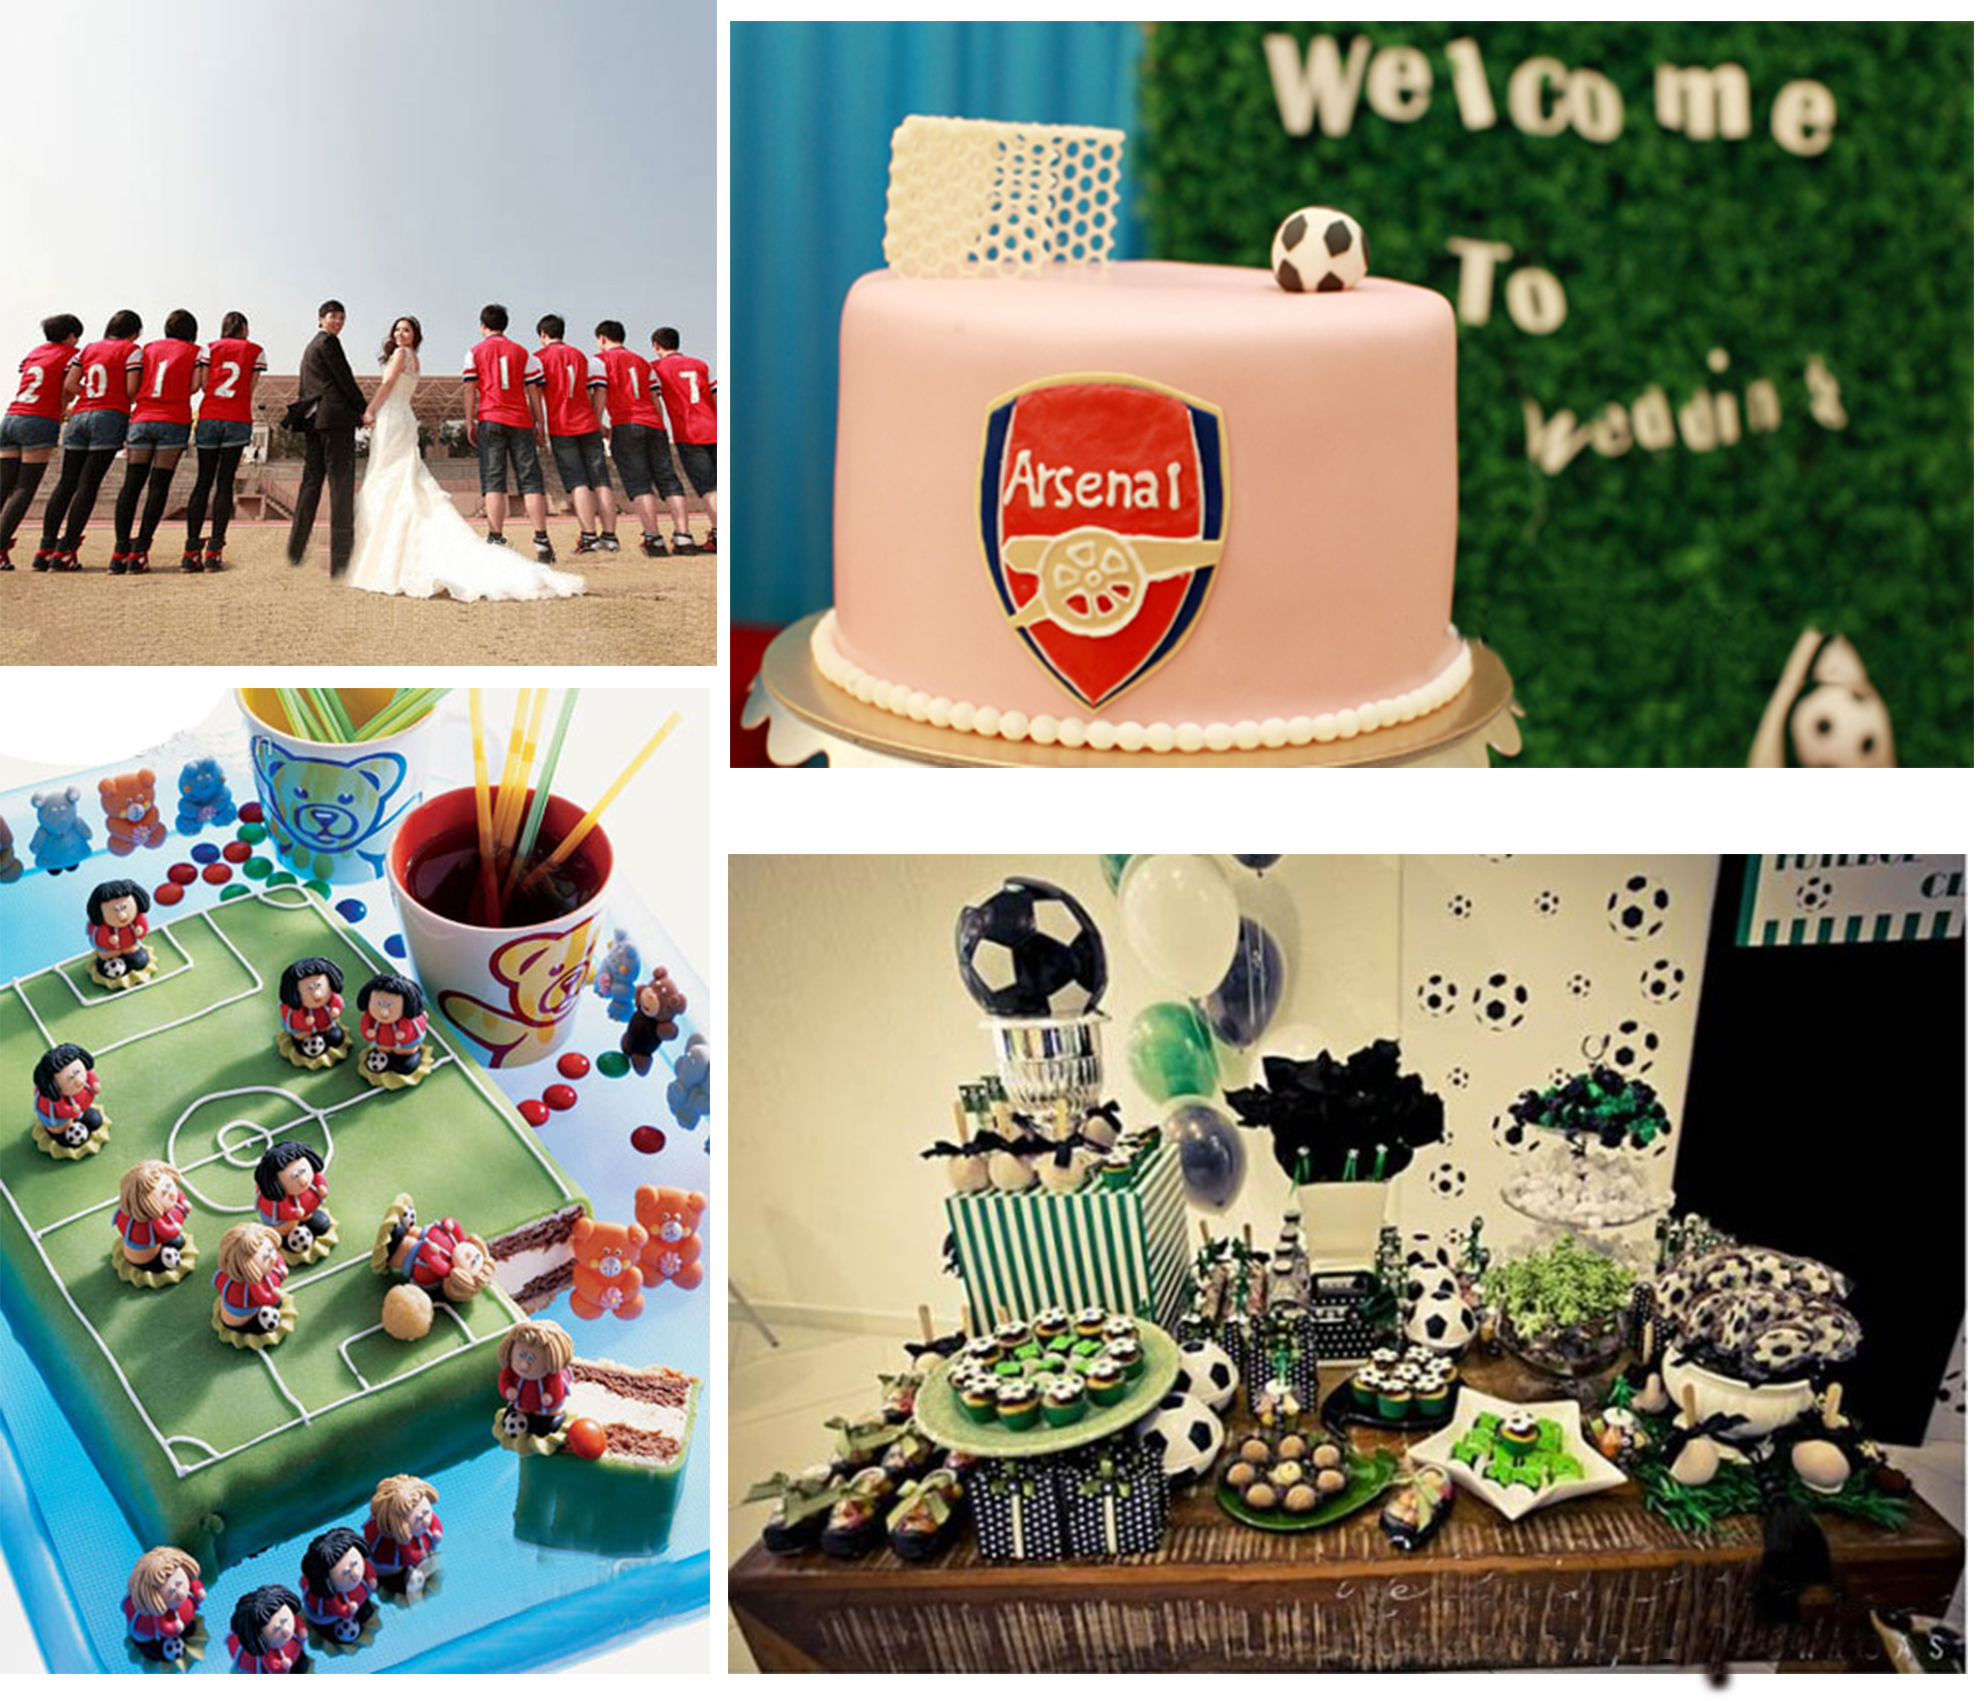 Football themed wedding party archives happyinvitation wedding details of fans of arsena junglespirit Image collections